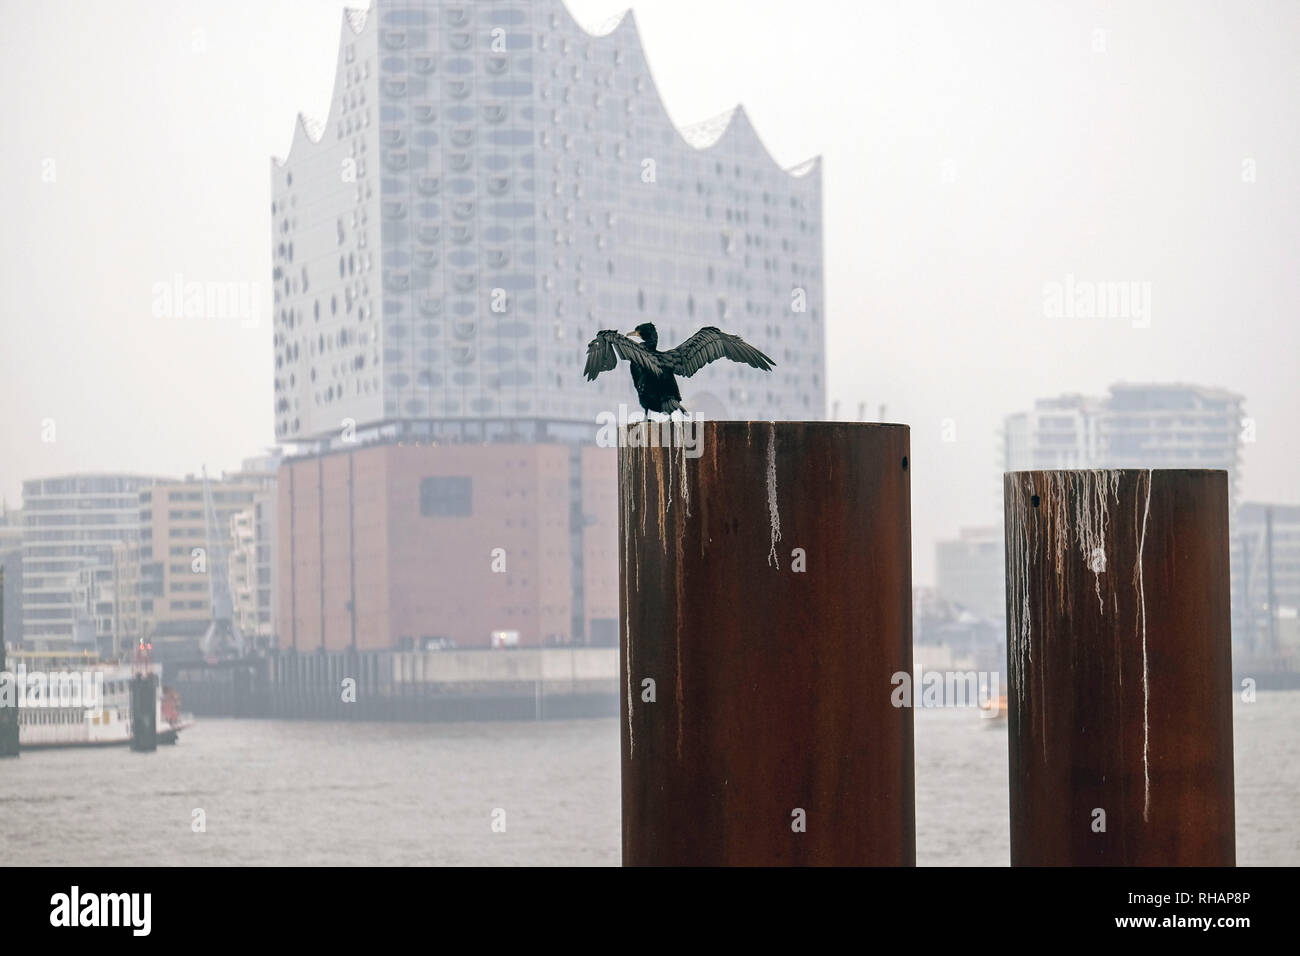 25.11.2018, Hamburg, Germany - a cormorant has spread its wings out to dry on a pole on the banks of the Elbe in Hamburg opposite the Elbe philharmine - Stock Image